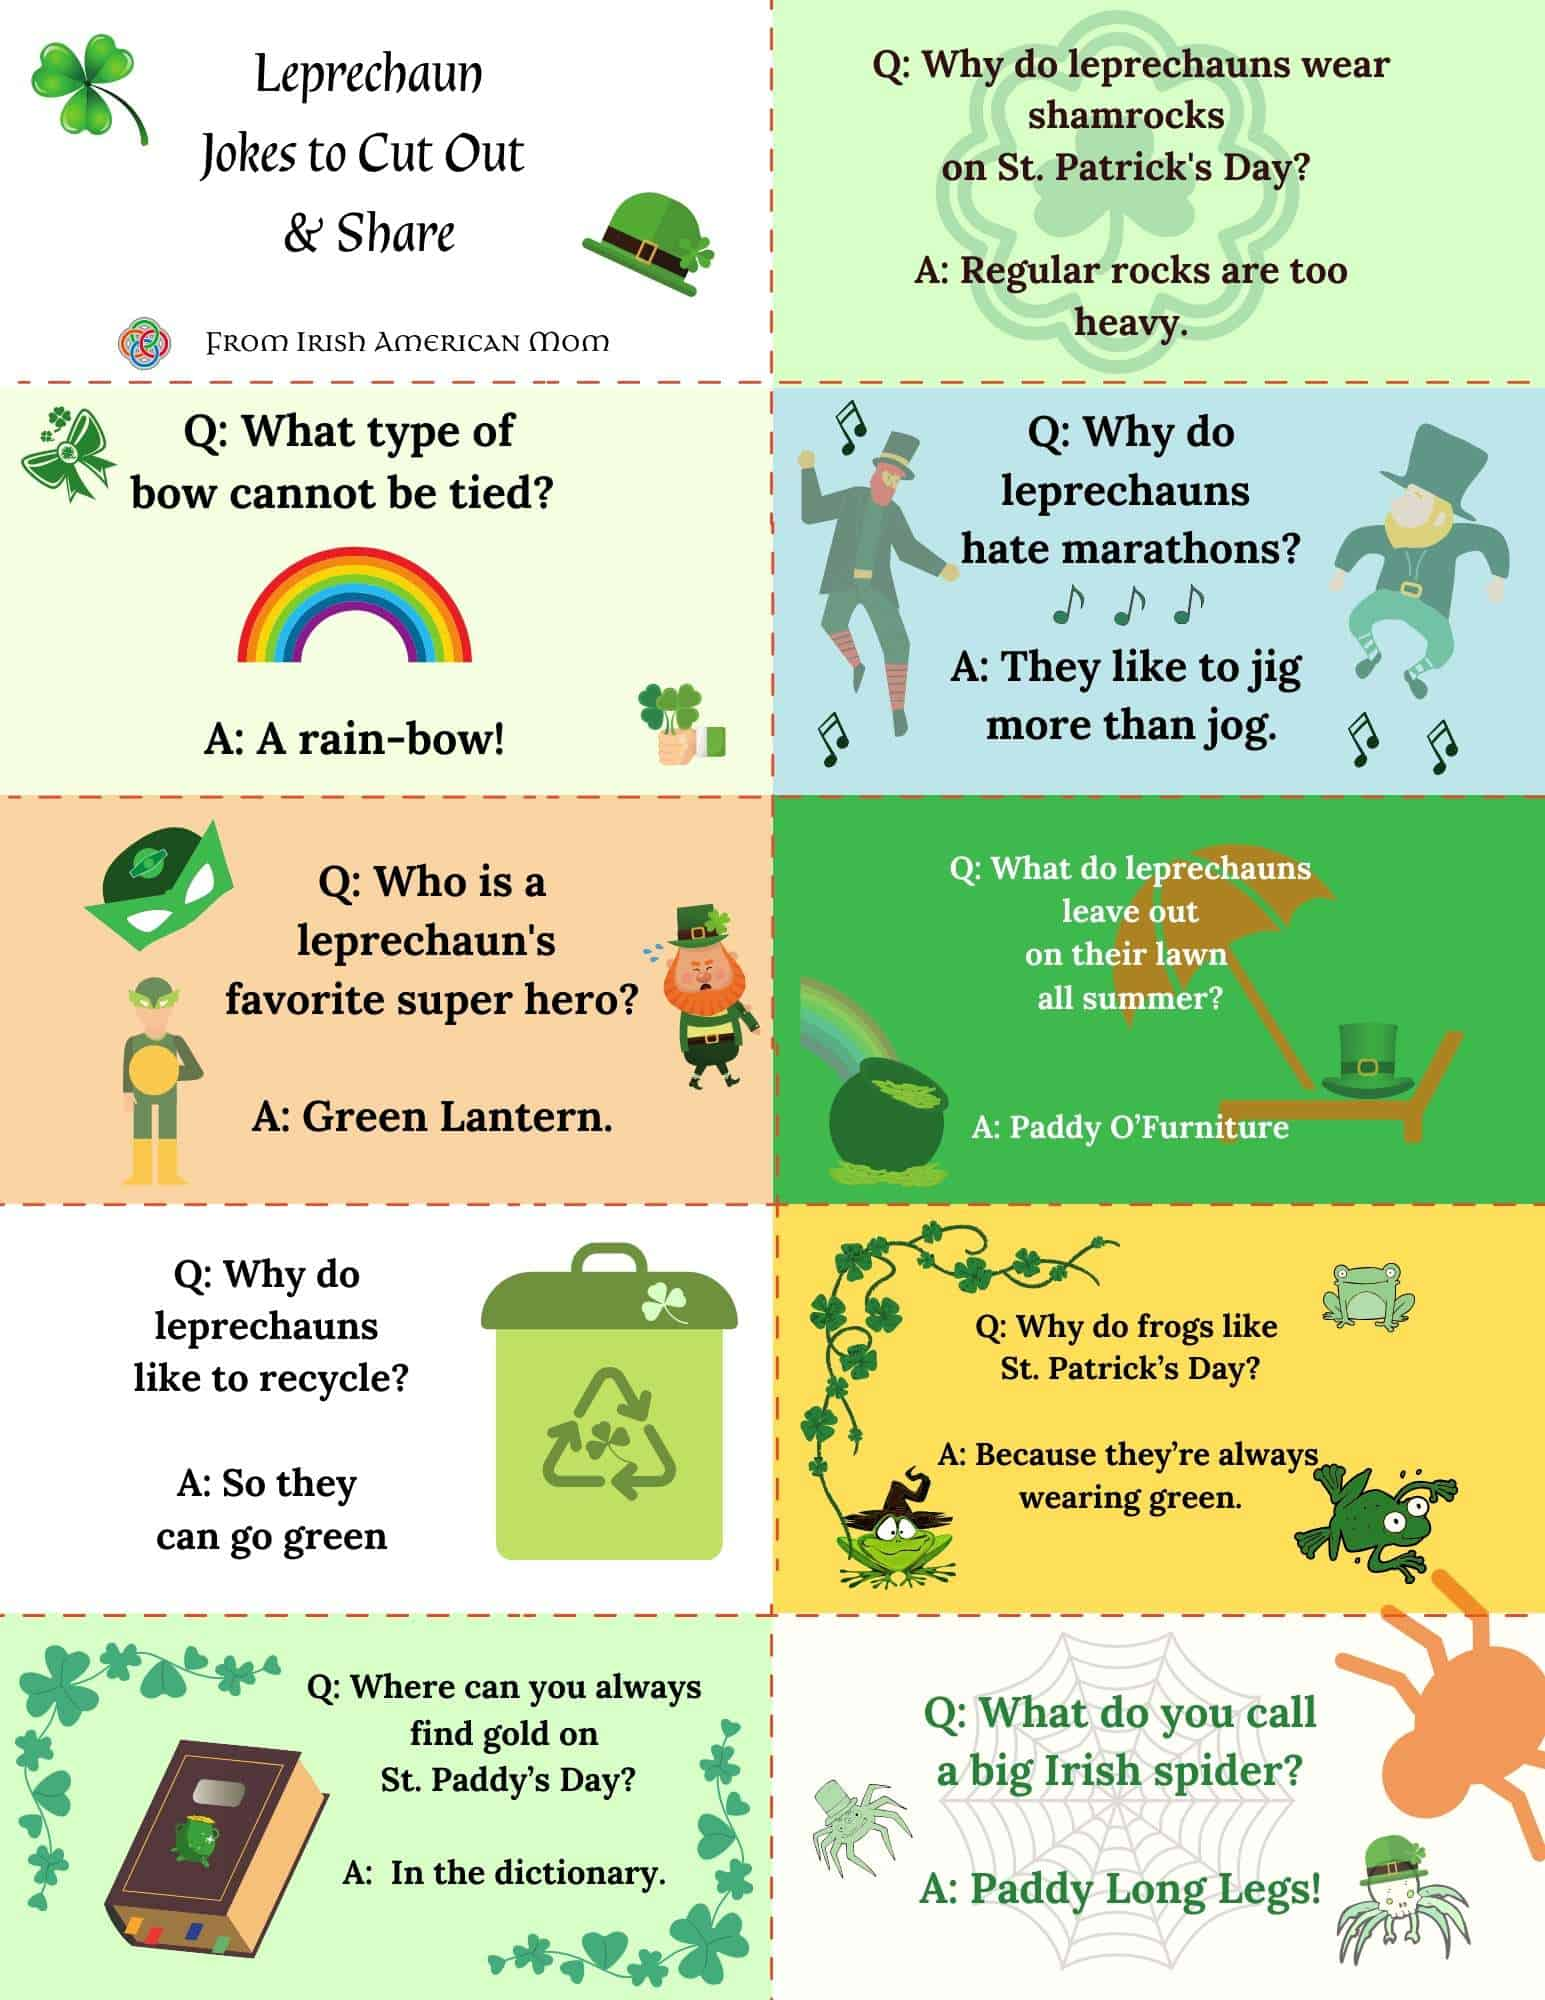 A printable sheet featuring leprechaun jokes that can be cut into rectangular business card size